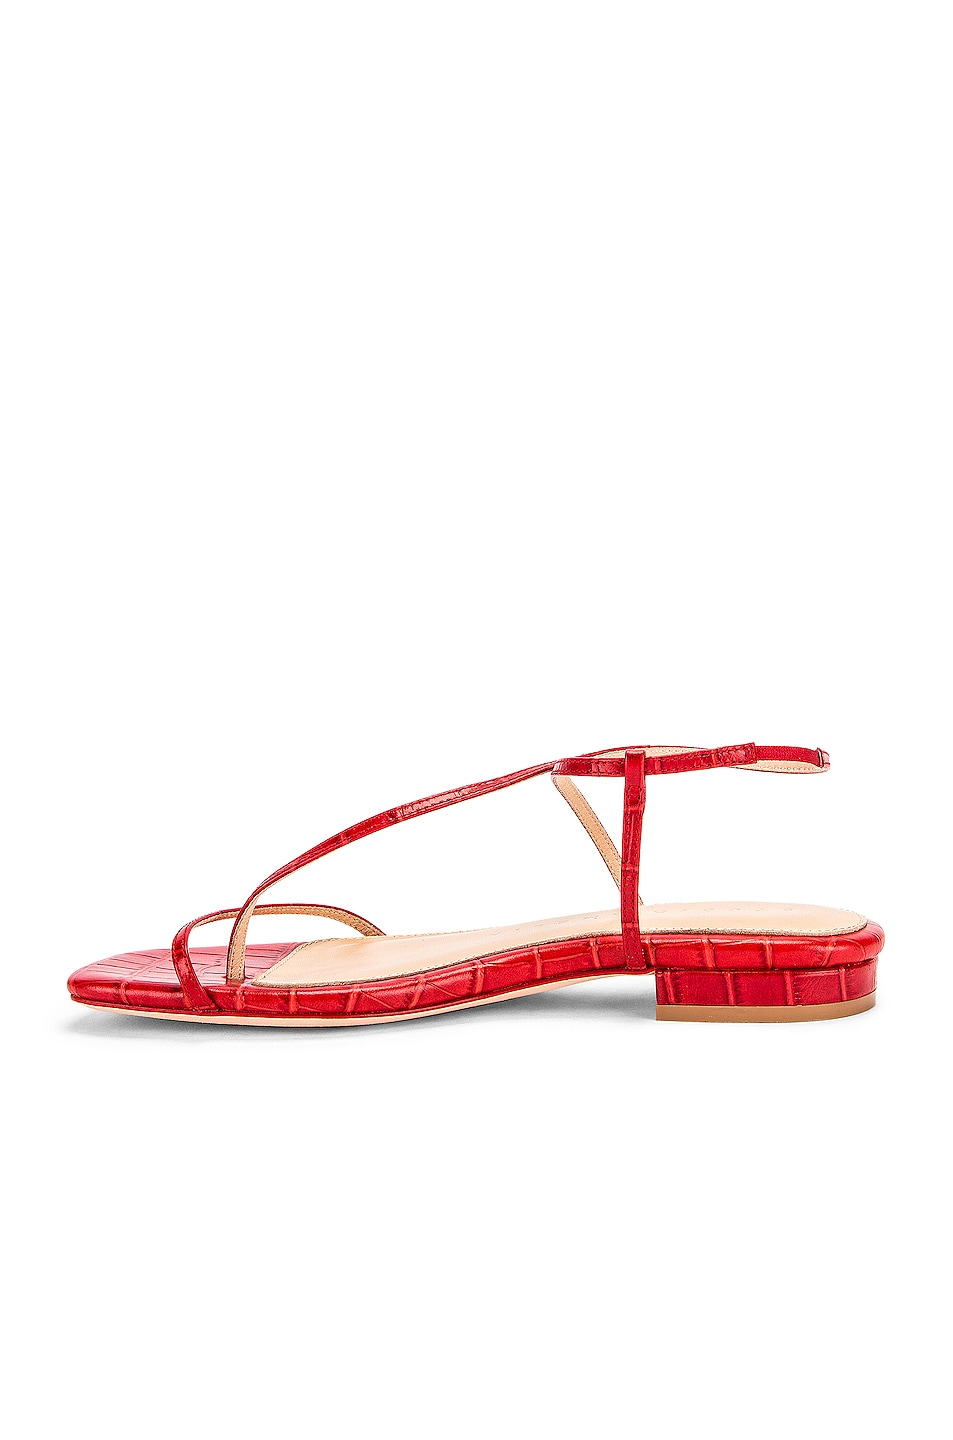 Image 5 of Studio Amelia 1.2 Sandal in Red Croc